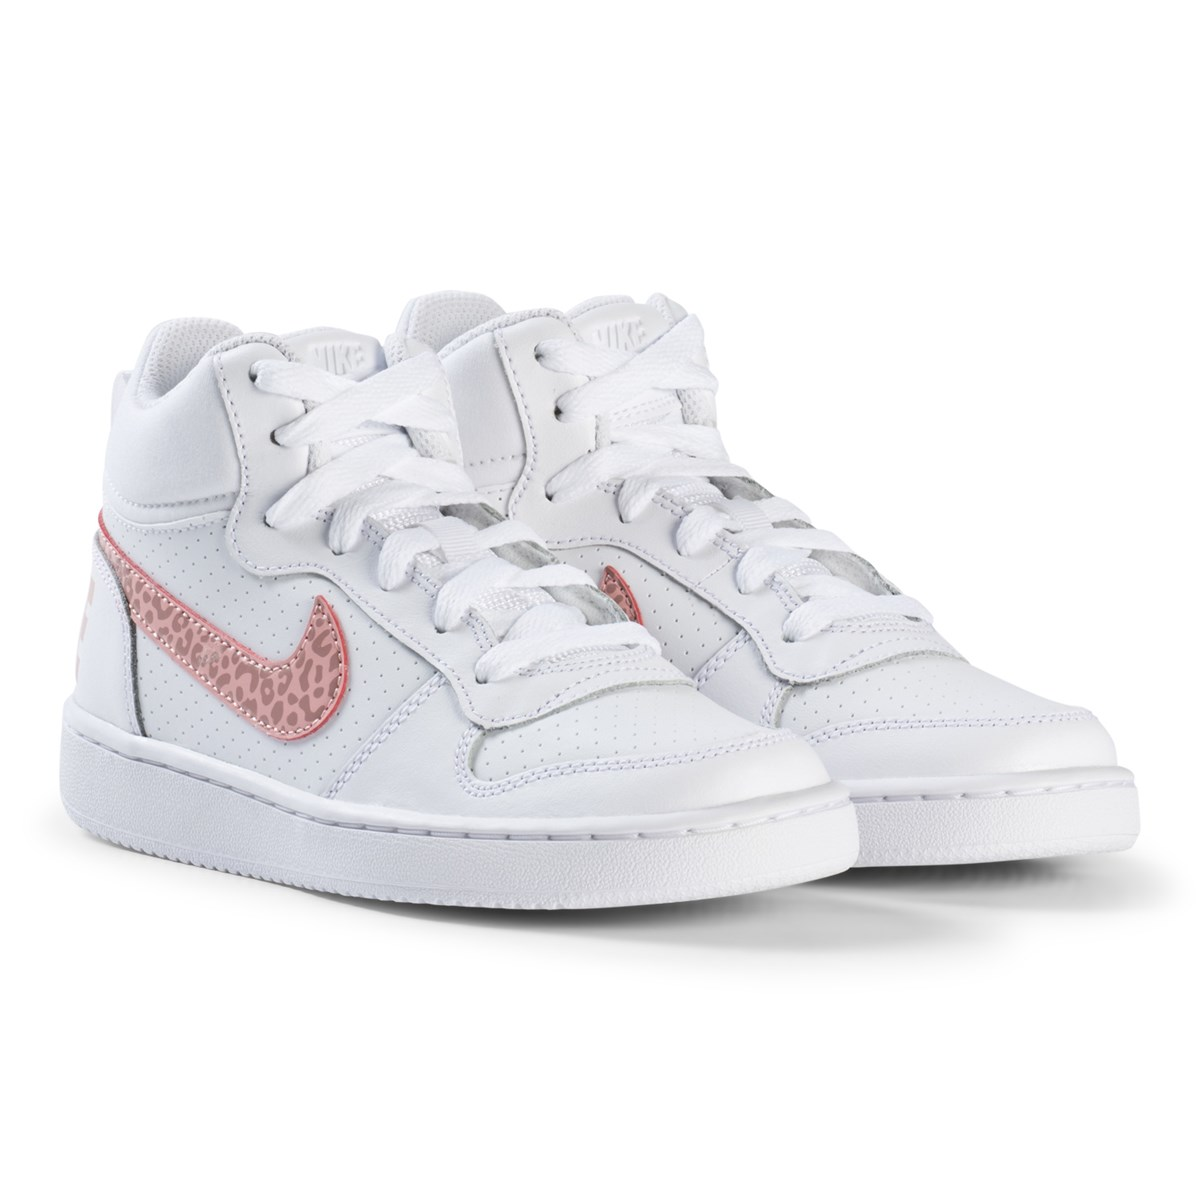 NIKE - Court Borough Mid Sneakers White/Rust Pink - Babyshop.com